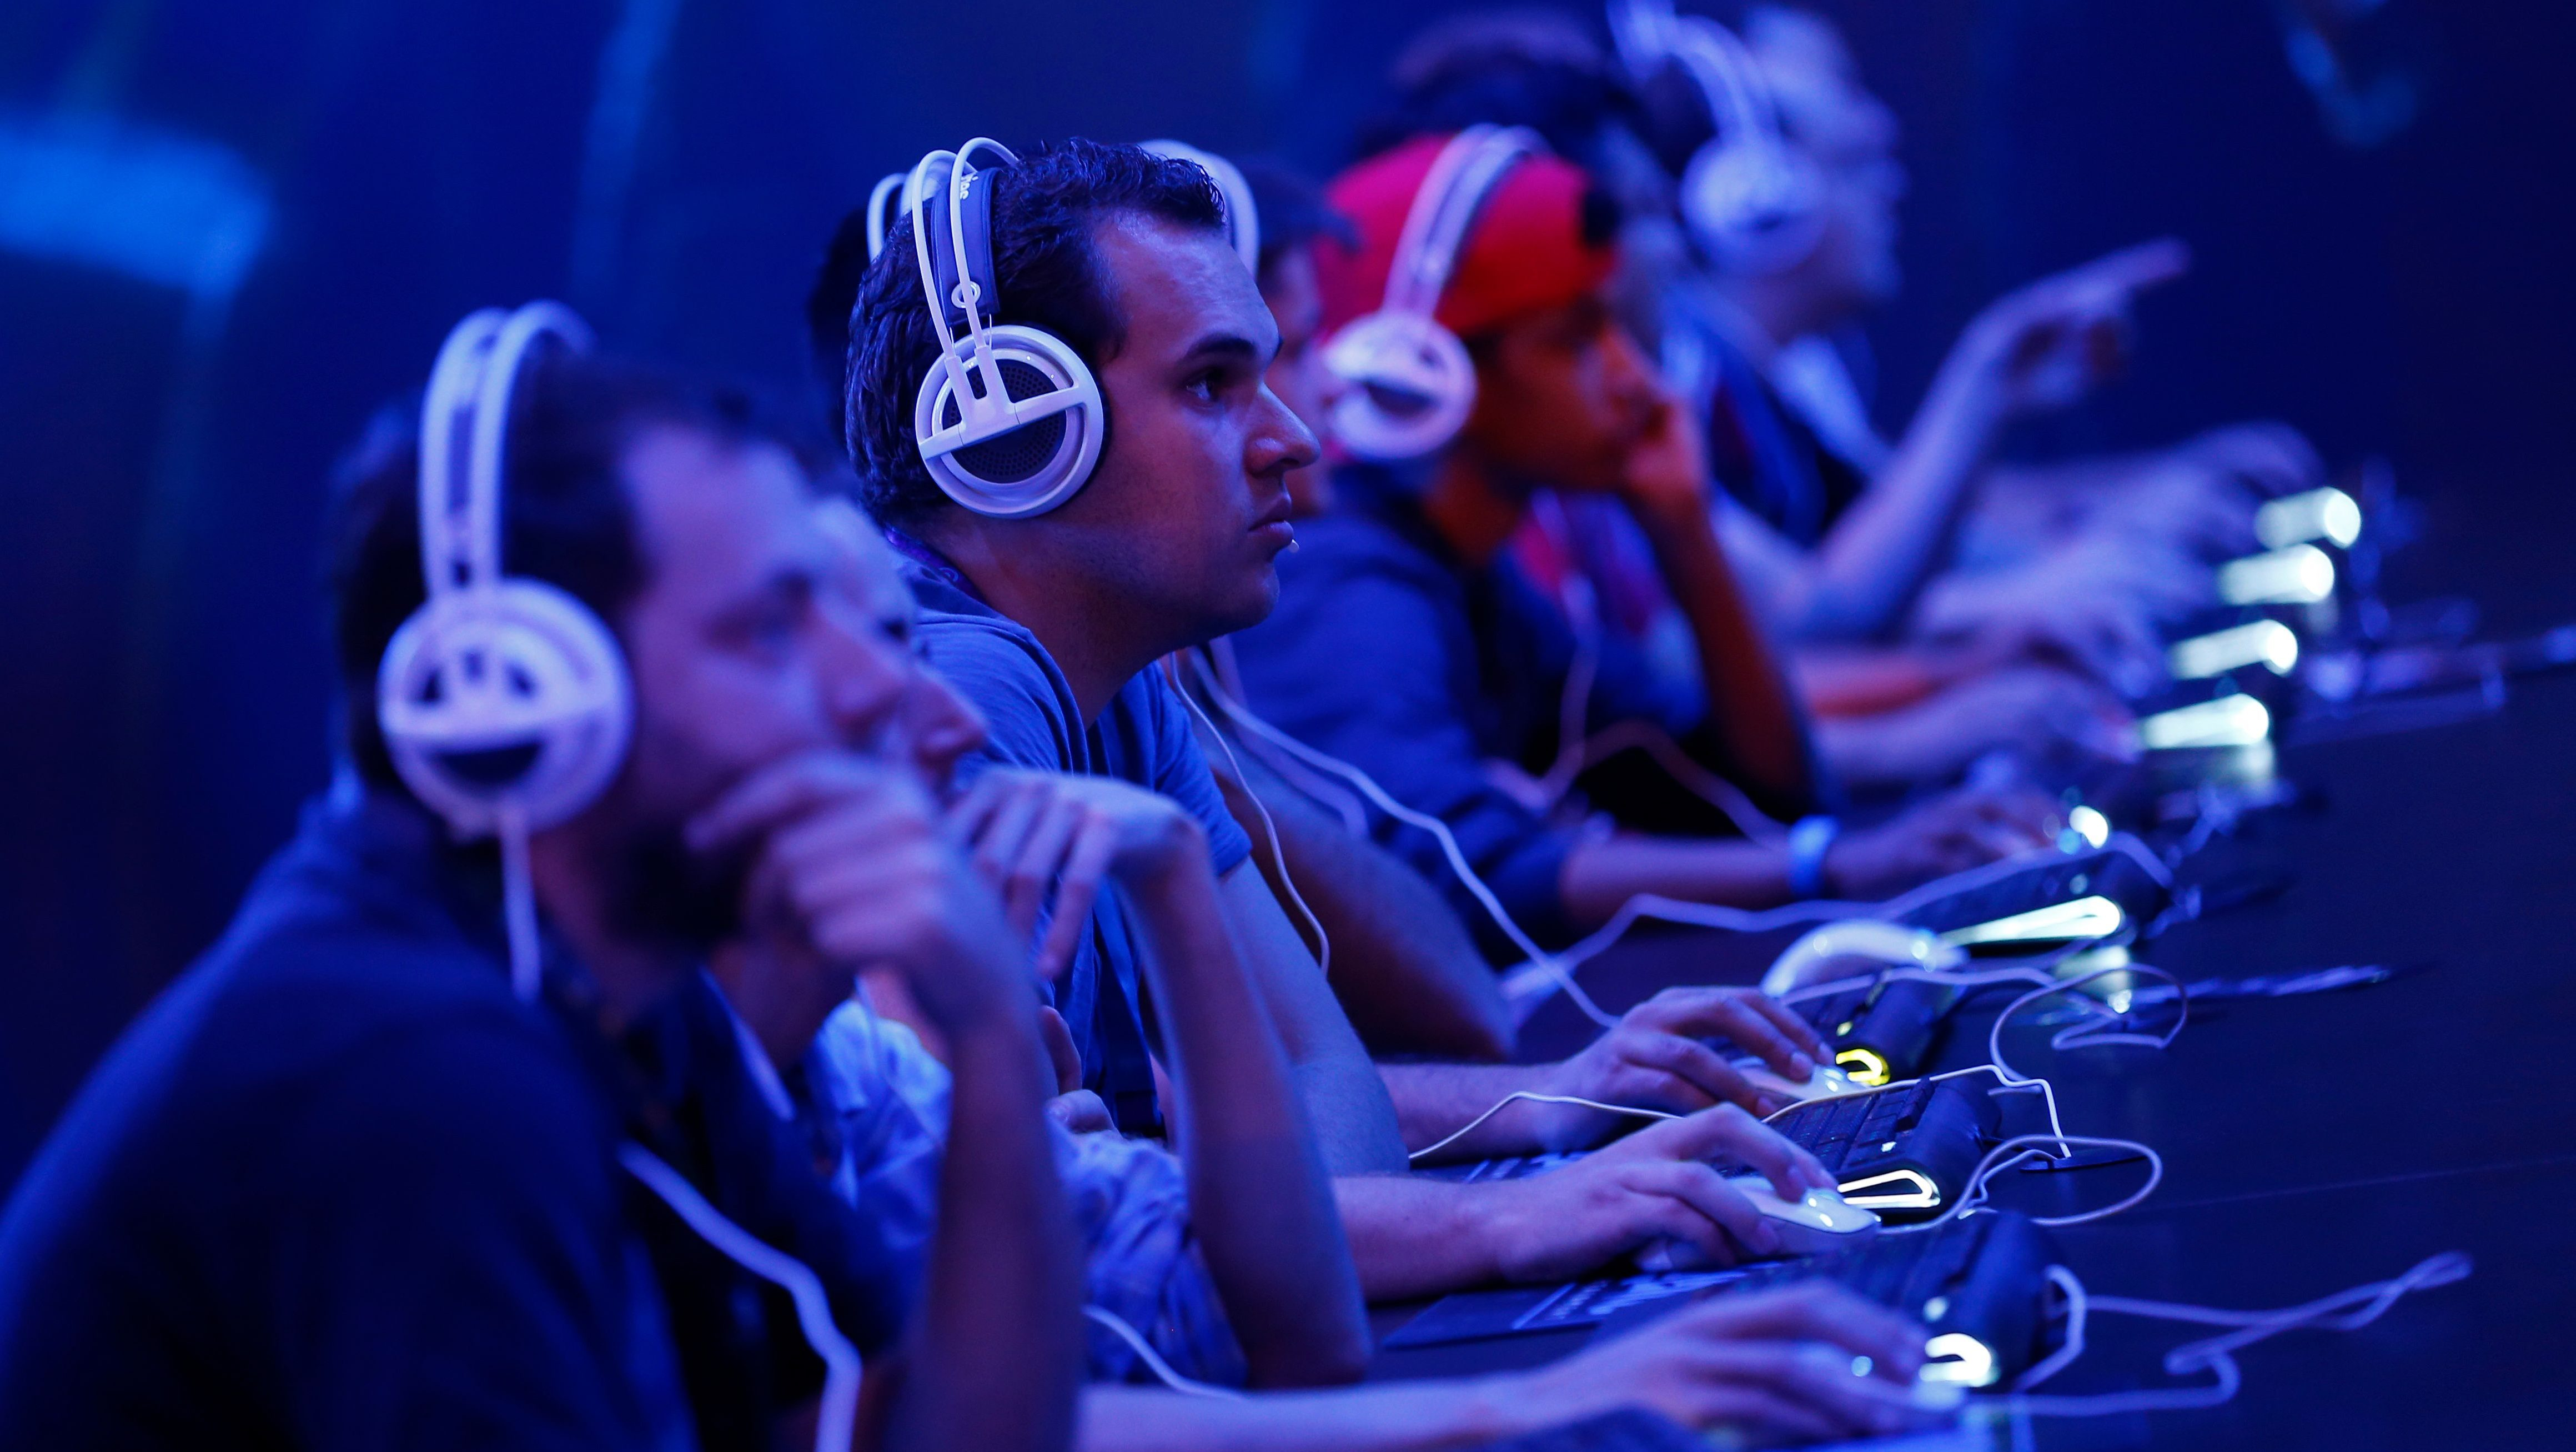 "Gamers play the ""StarCraft II"" developed by video game producer Blizzard Entertainment during the Gamescom 2015 fair in Cologne, Germany August 5, 2015. The Gamescom convention, Europe's largest video games trade fair, runs from August 5 to August 9. REUTERS/Kai Pfaffenbach TPX IMAGES OF THE DAY - LR2EB850TGK8W"